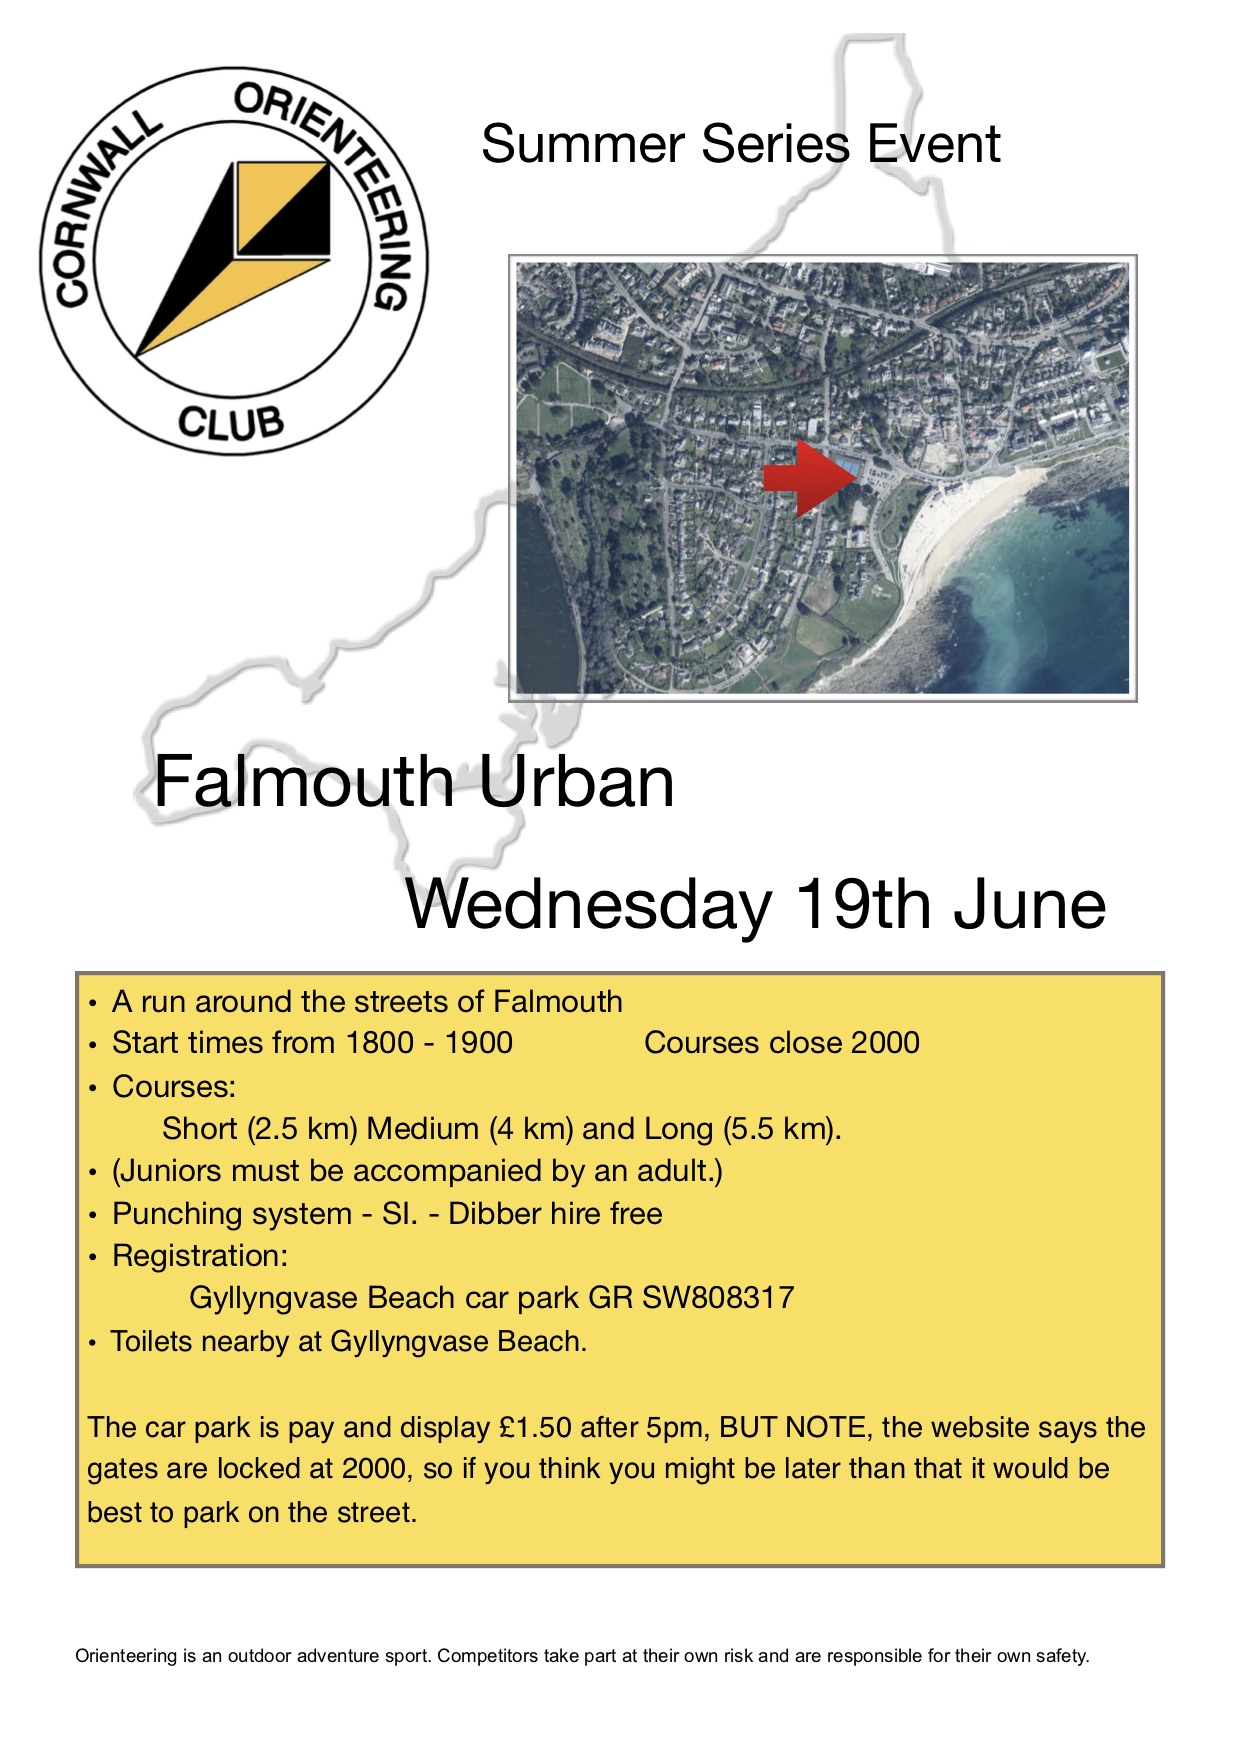 Flyer for falmouth event